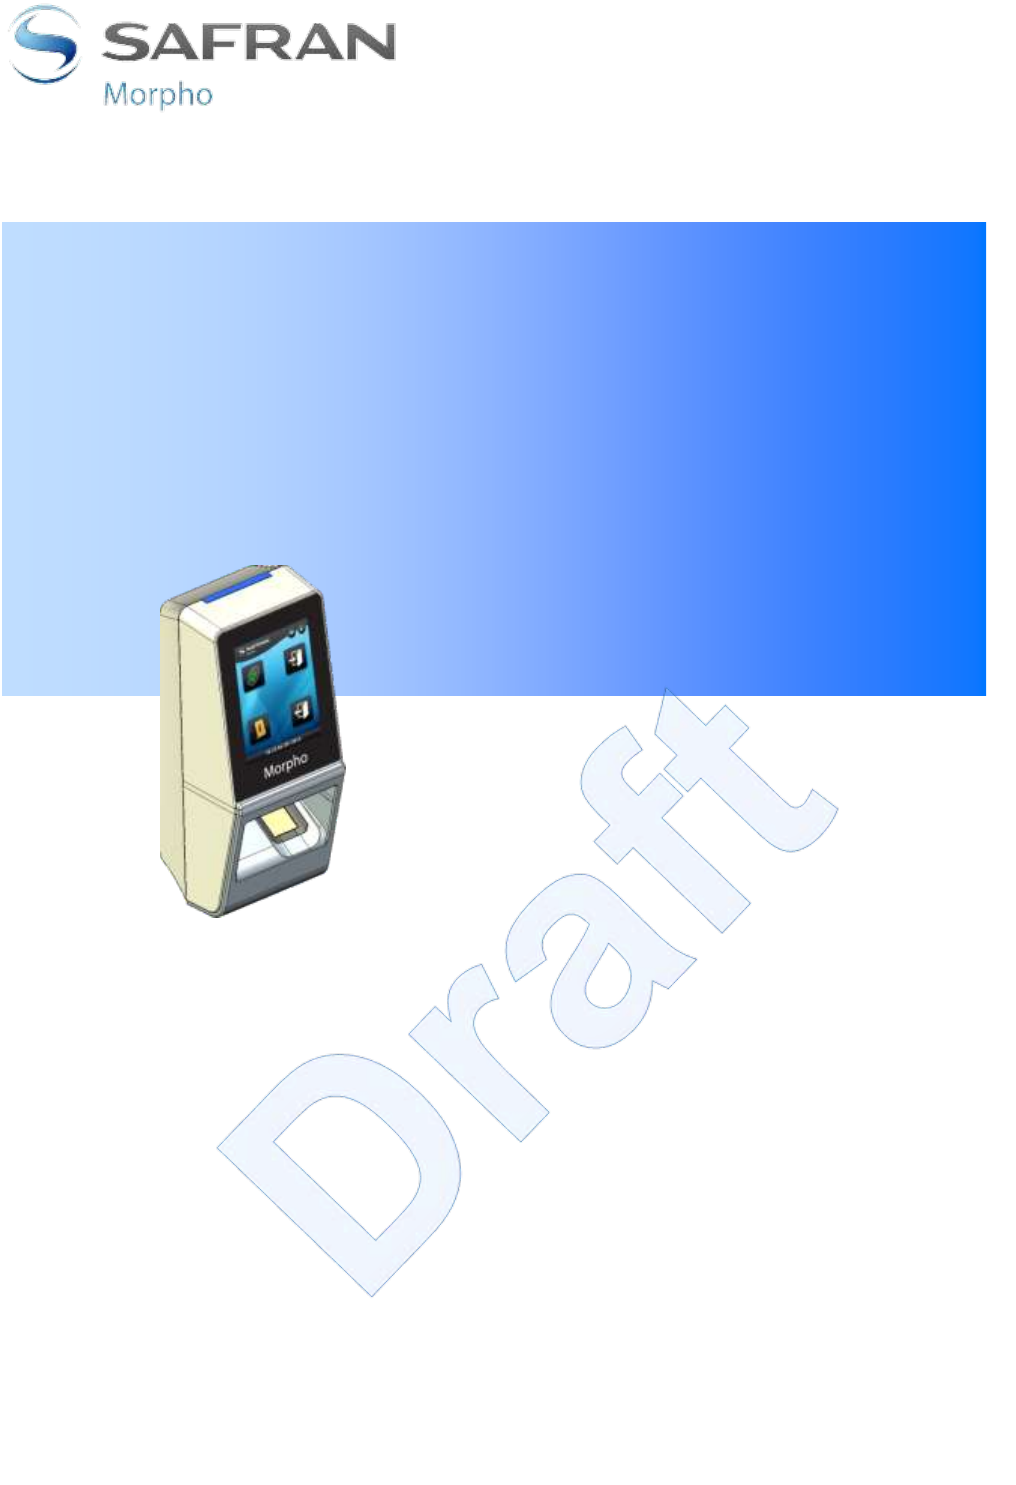 IDEMIA Identity and Security France MPHAC001B Control Access